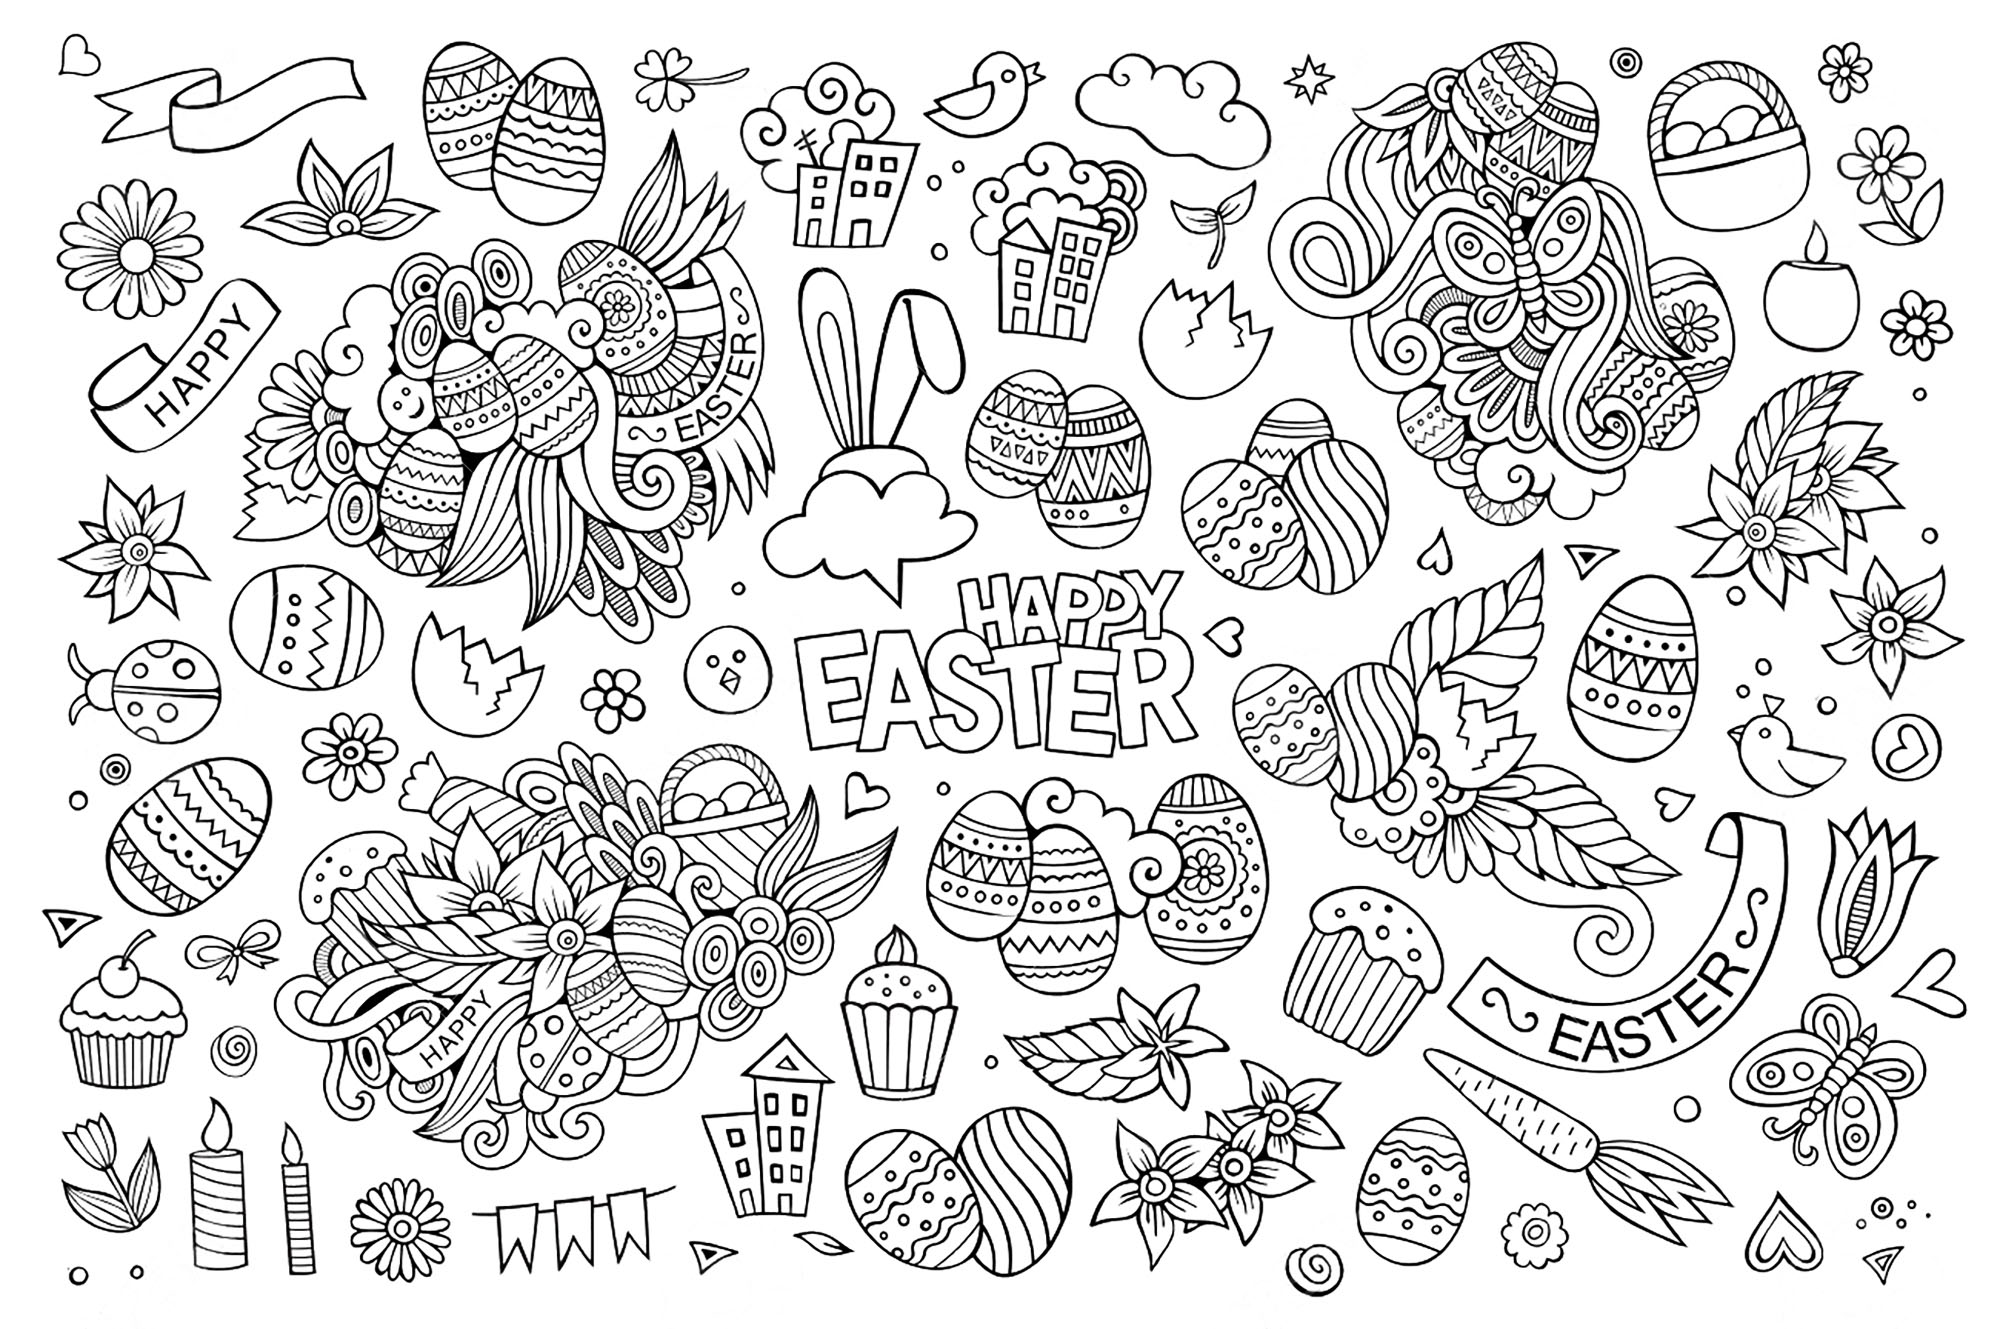 Easter Doodle Coloring Pages for Adults